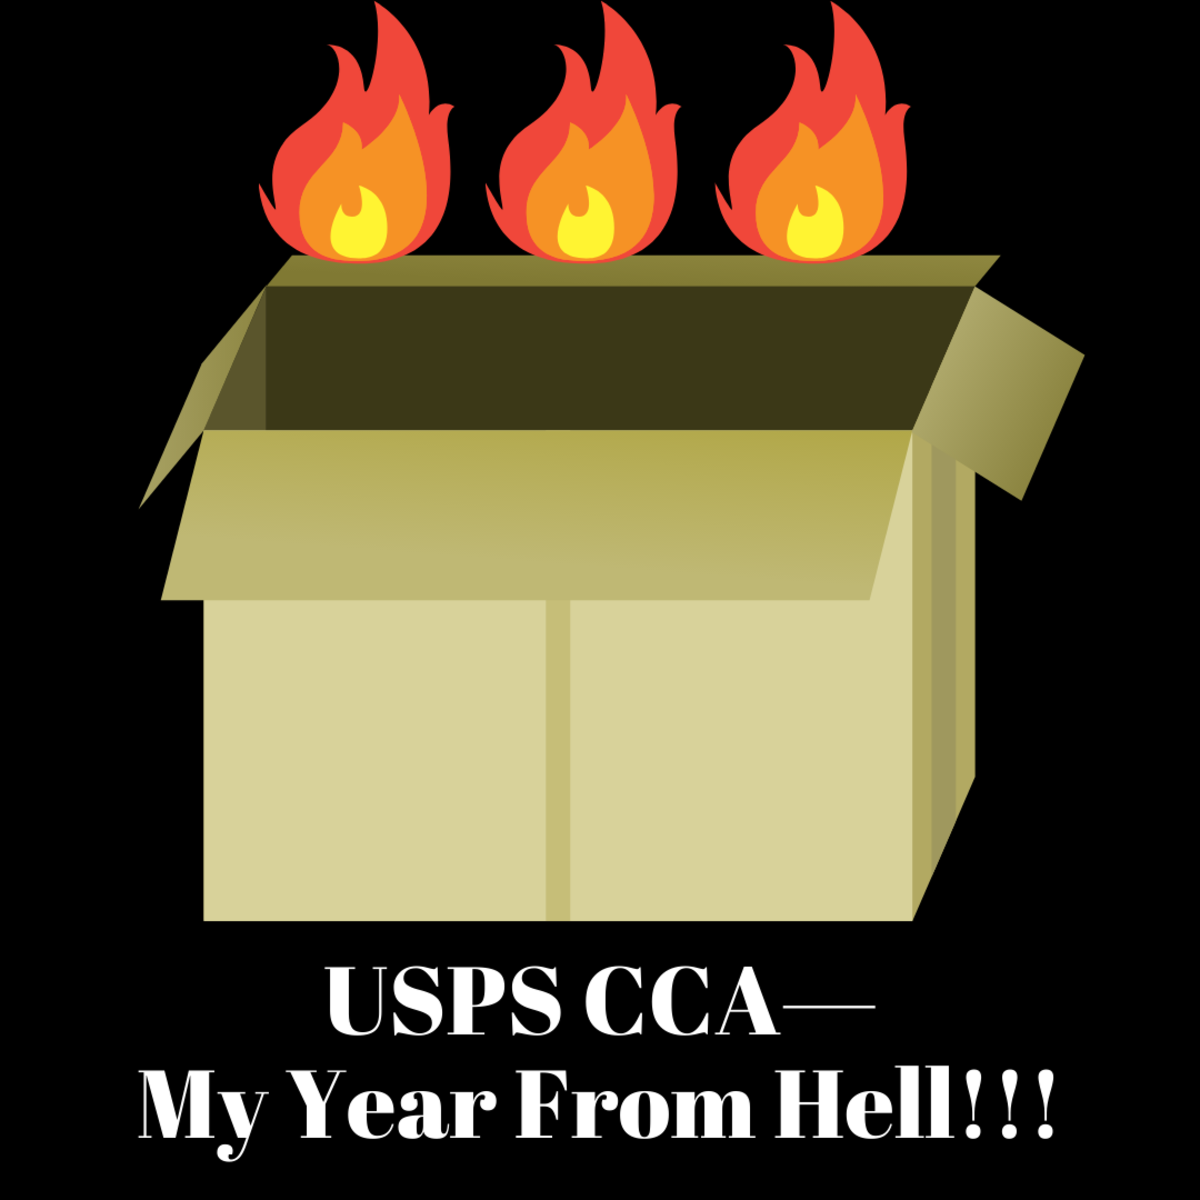 USPS CCA—My Year From Hell